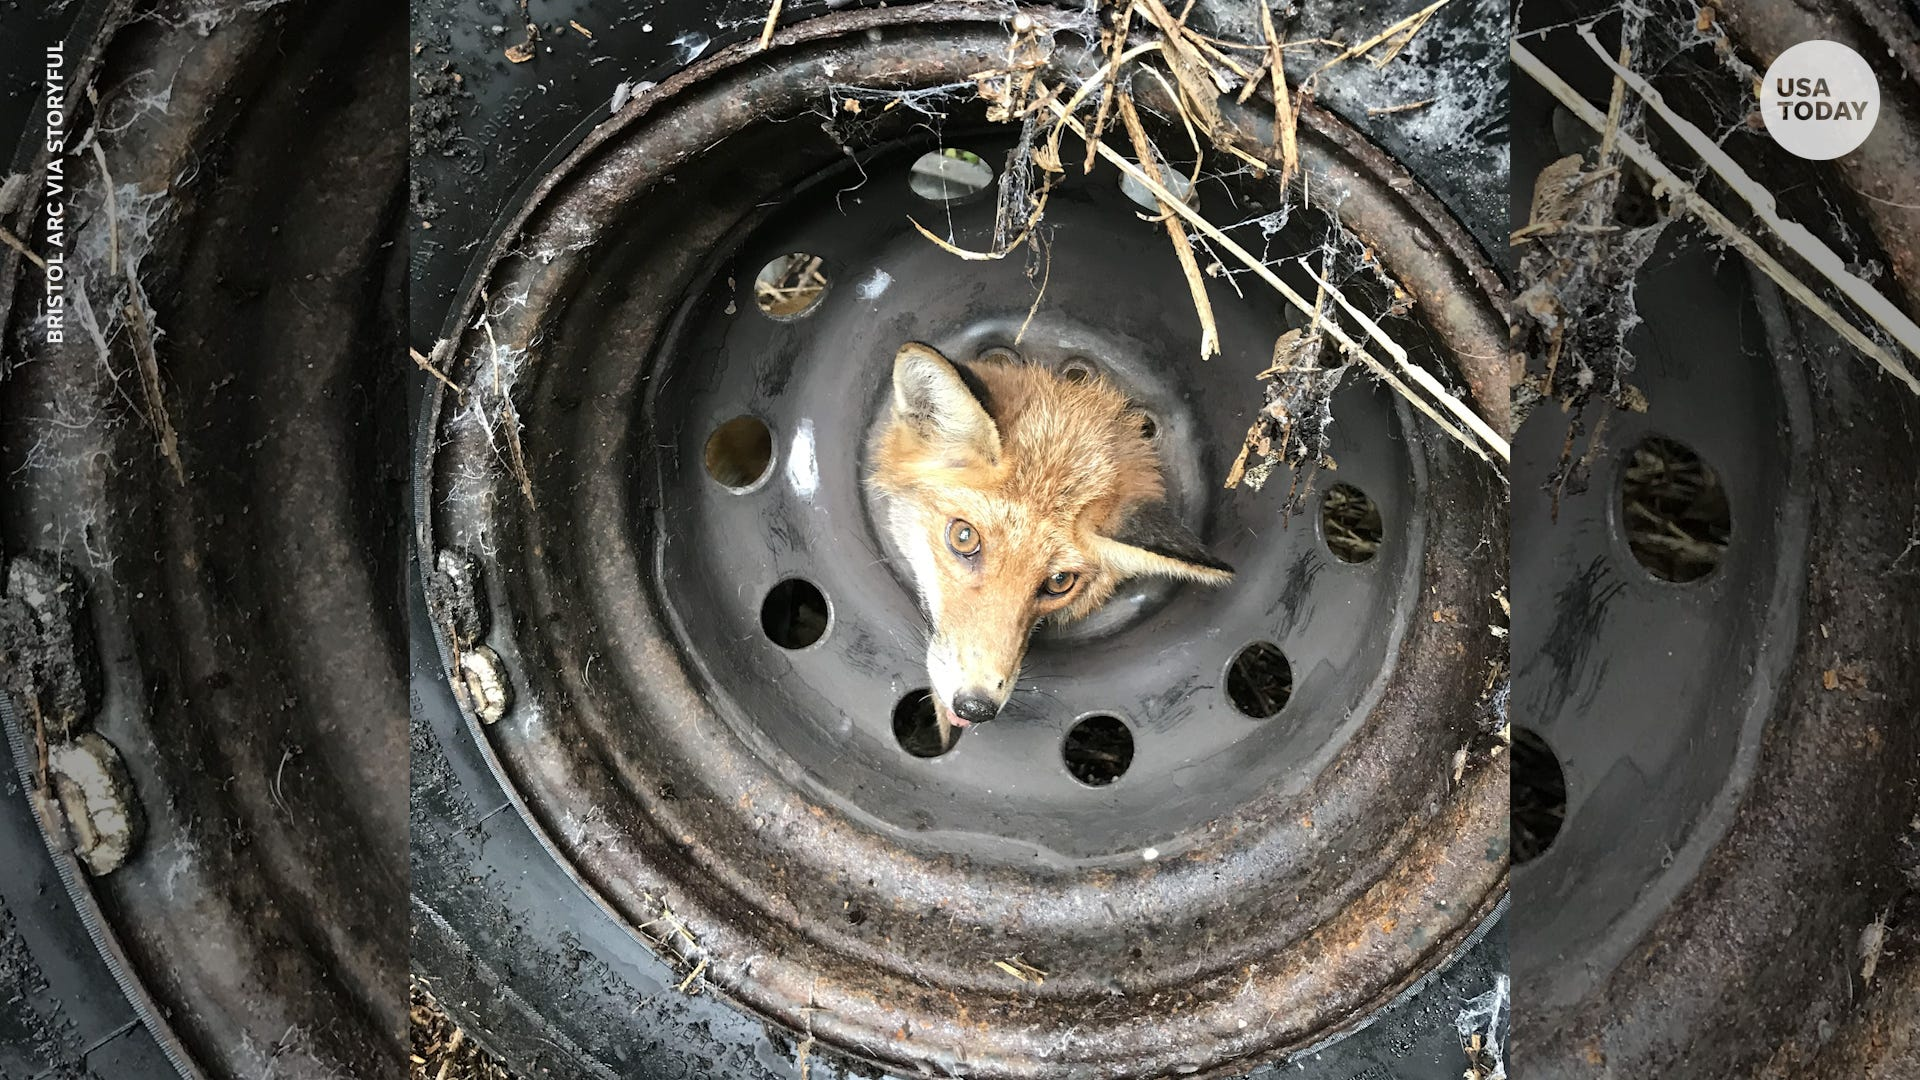 Fox rescued after getting head stuck in discarded tire